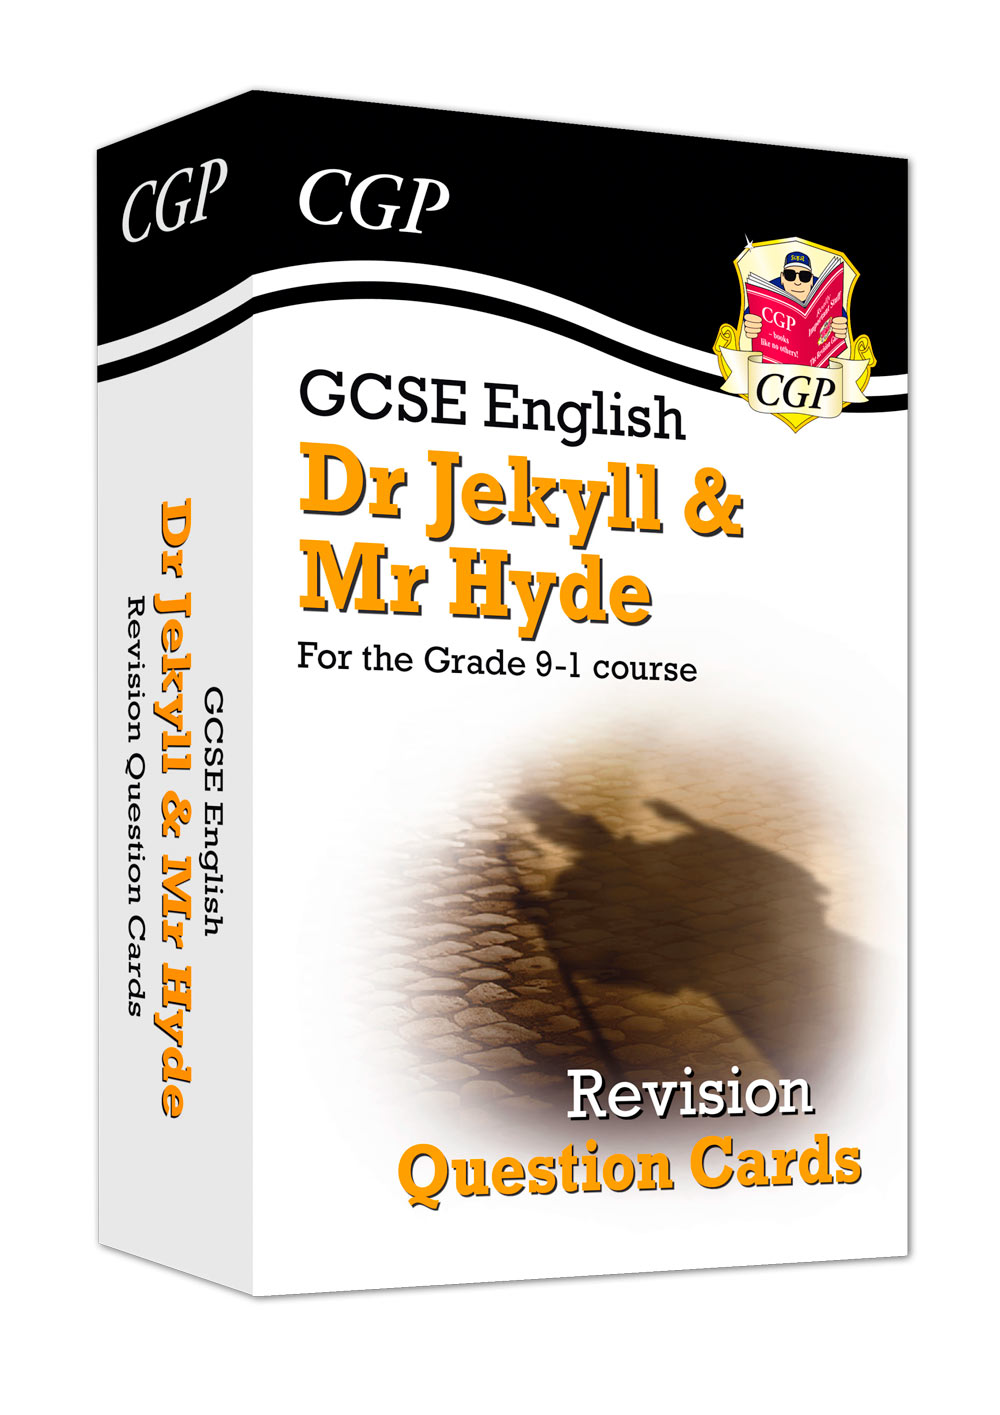 ETFJH41 - New Grade 9-1 GCSE English - Dr Jekyll and Mr Hyde Revision Question Cards